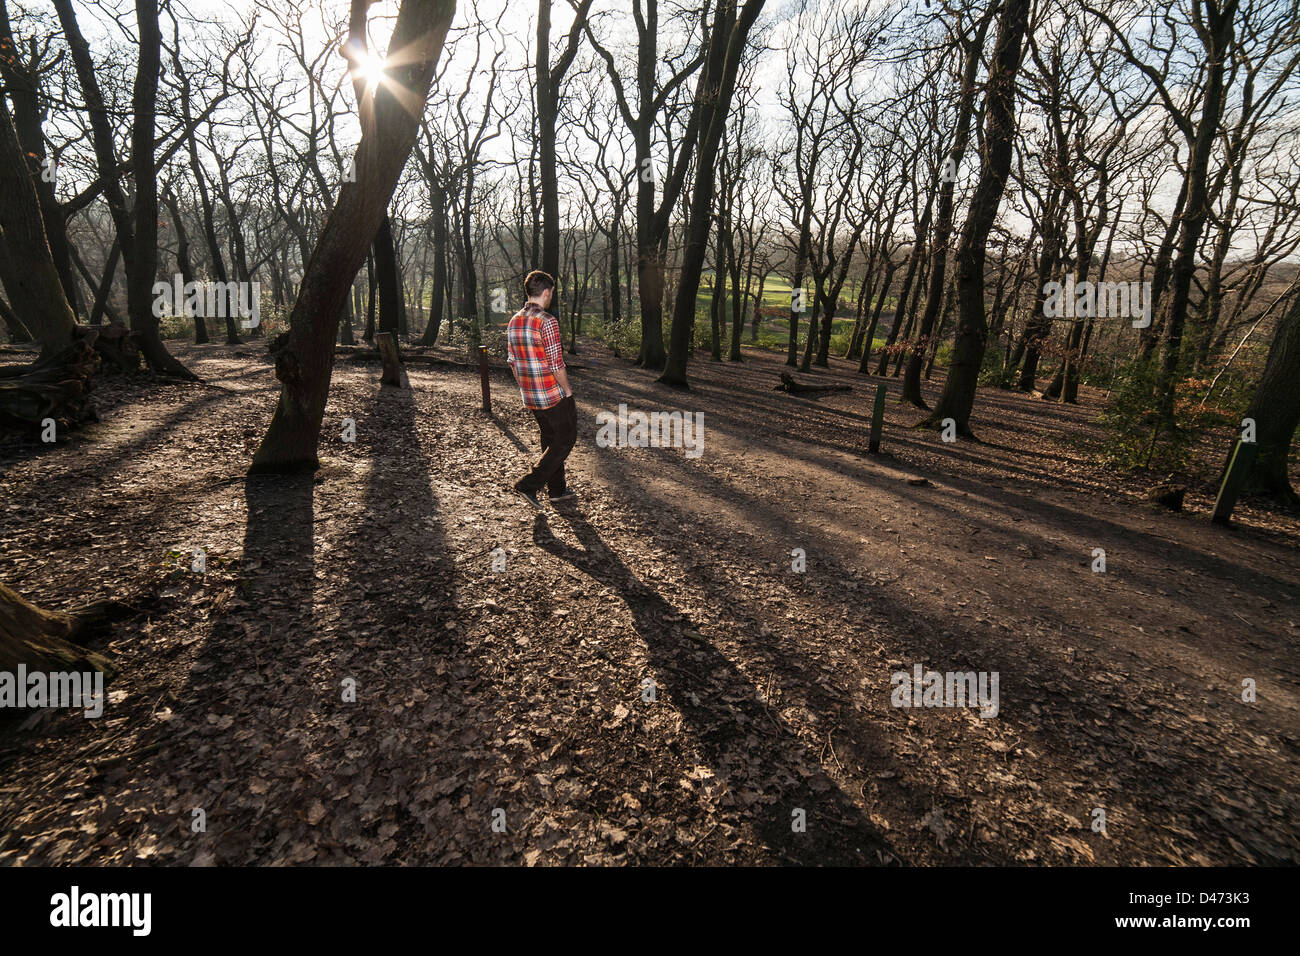 Man in a red checked shirt with his back to us walking into the woods across long shadowy trees with the sun behind - Stock Image